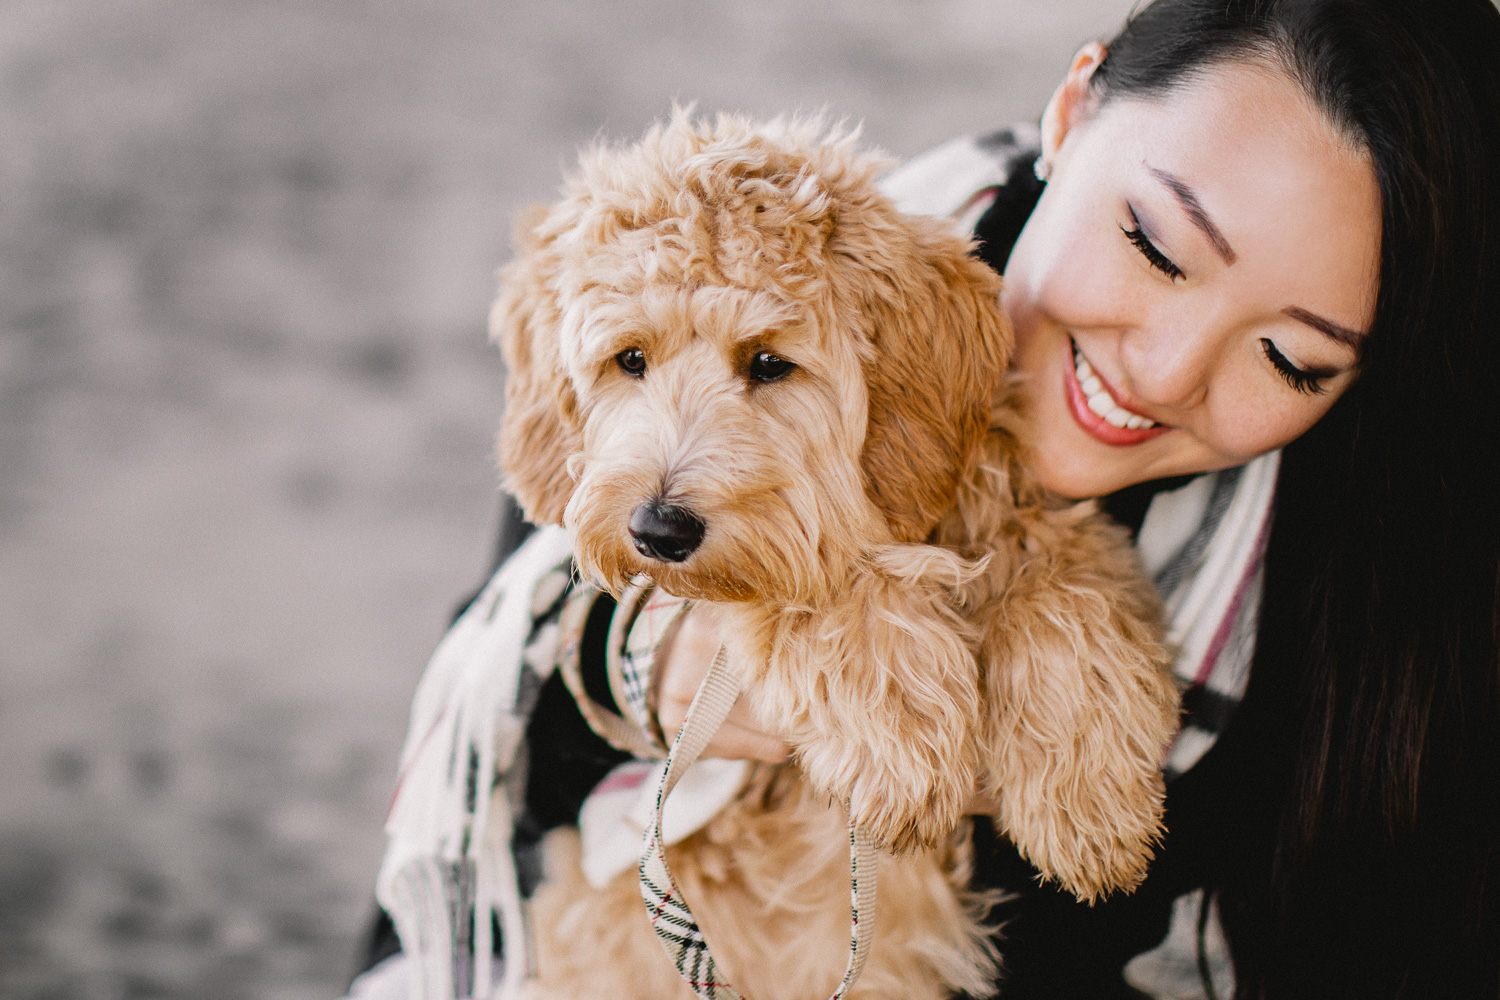 Pismo-Beach-Couples-Photography-Session-With-Puppy-105.jpg